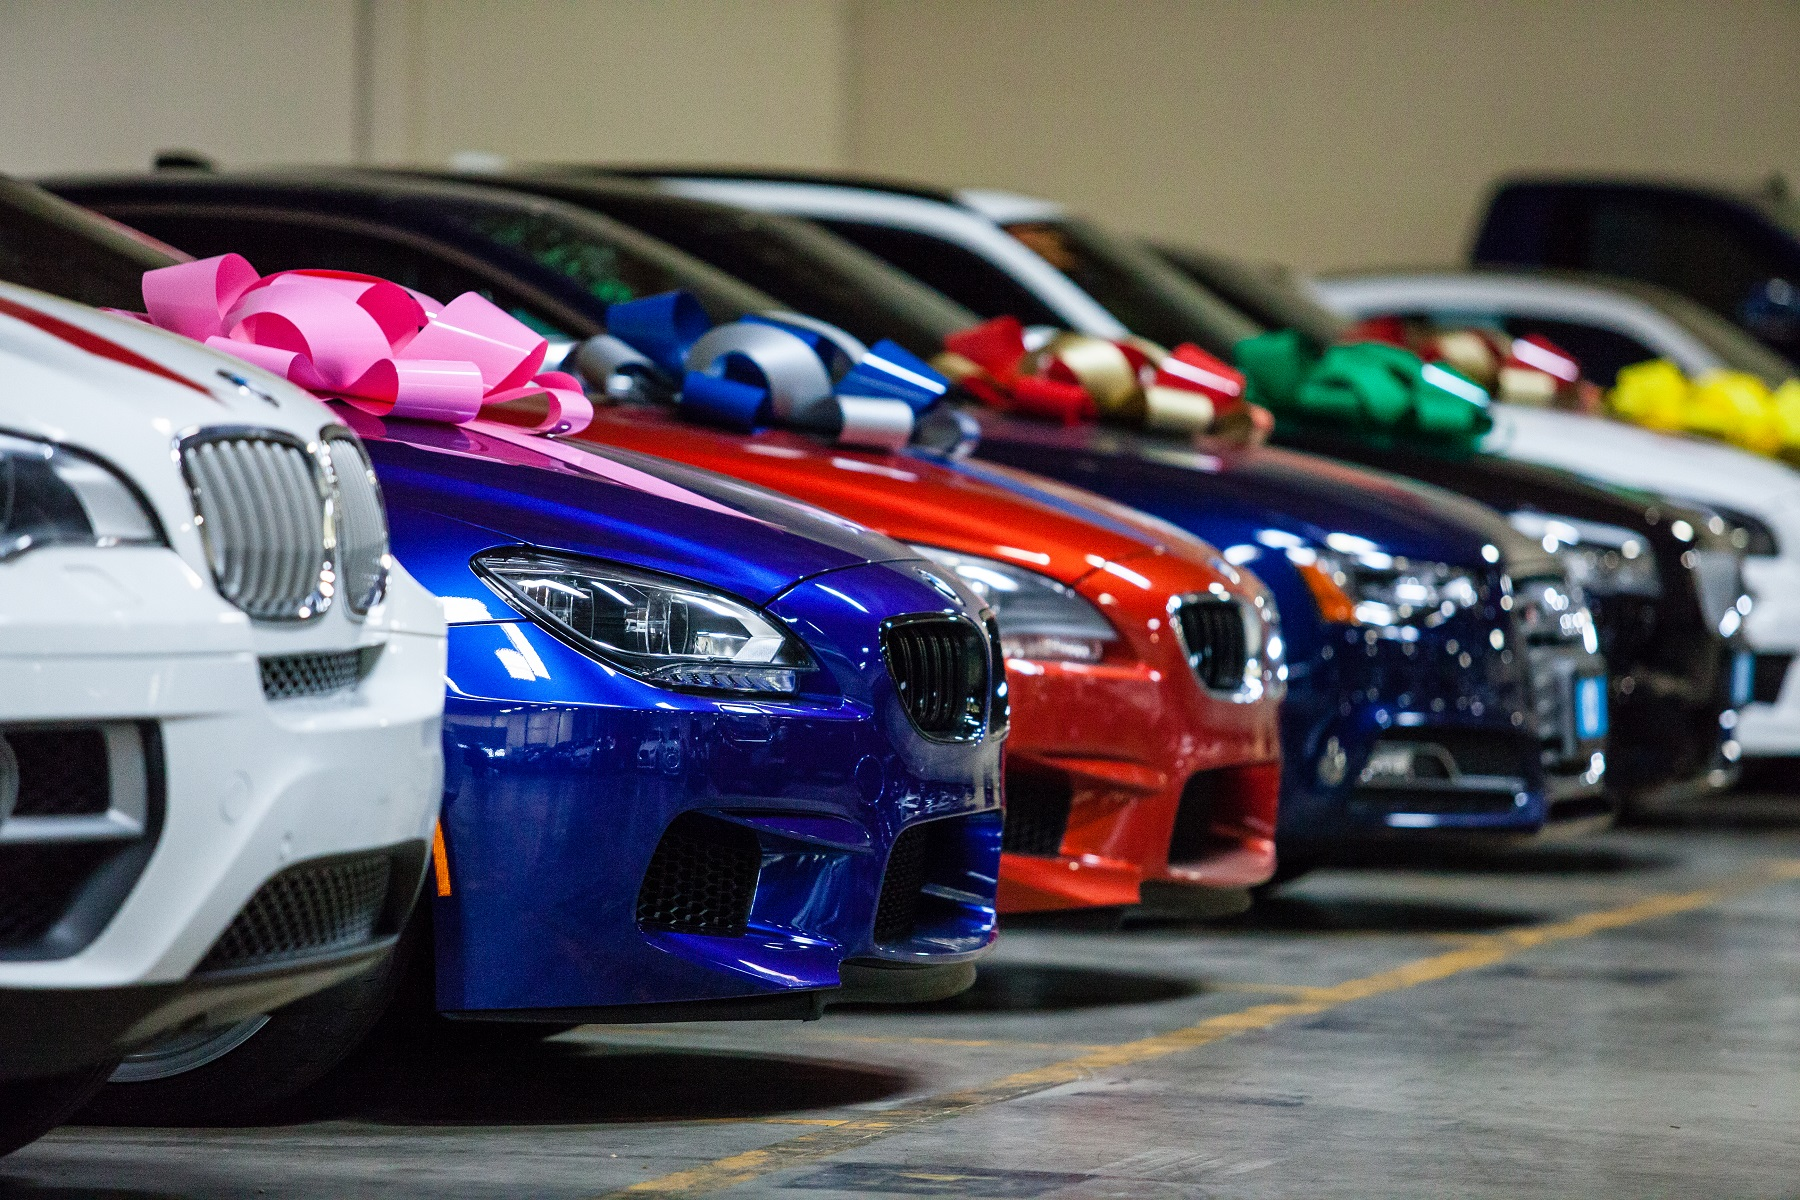 Used-Car Virtual Shopping: A New Buying Reality - Down the Road ...